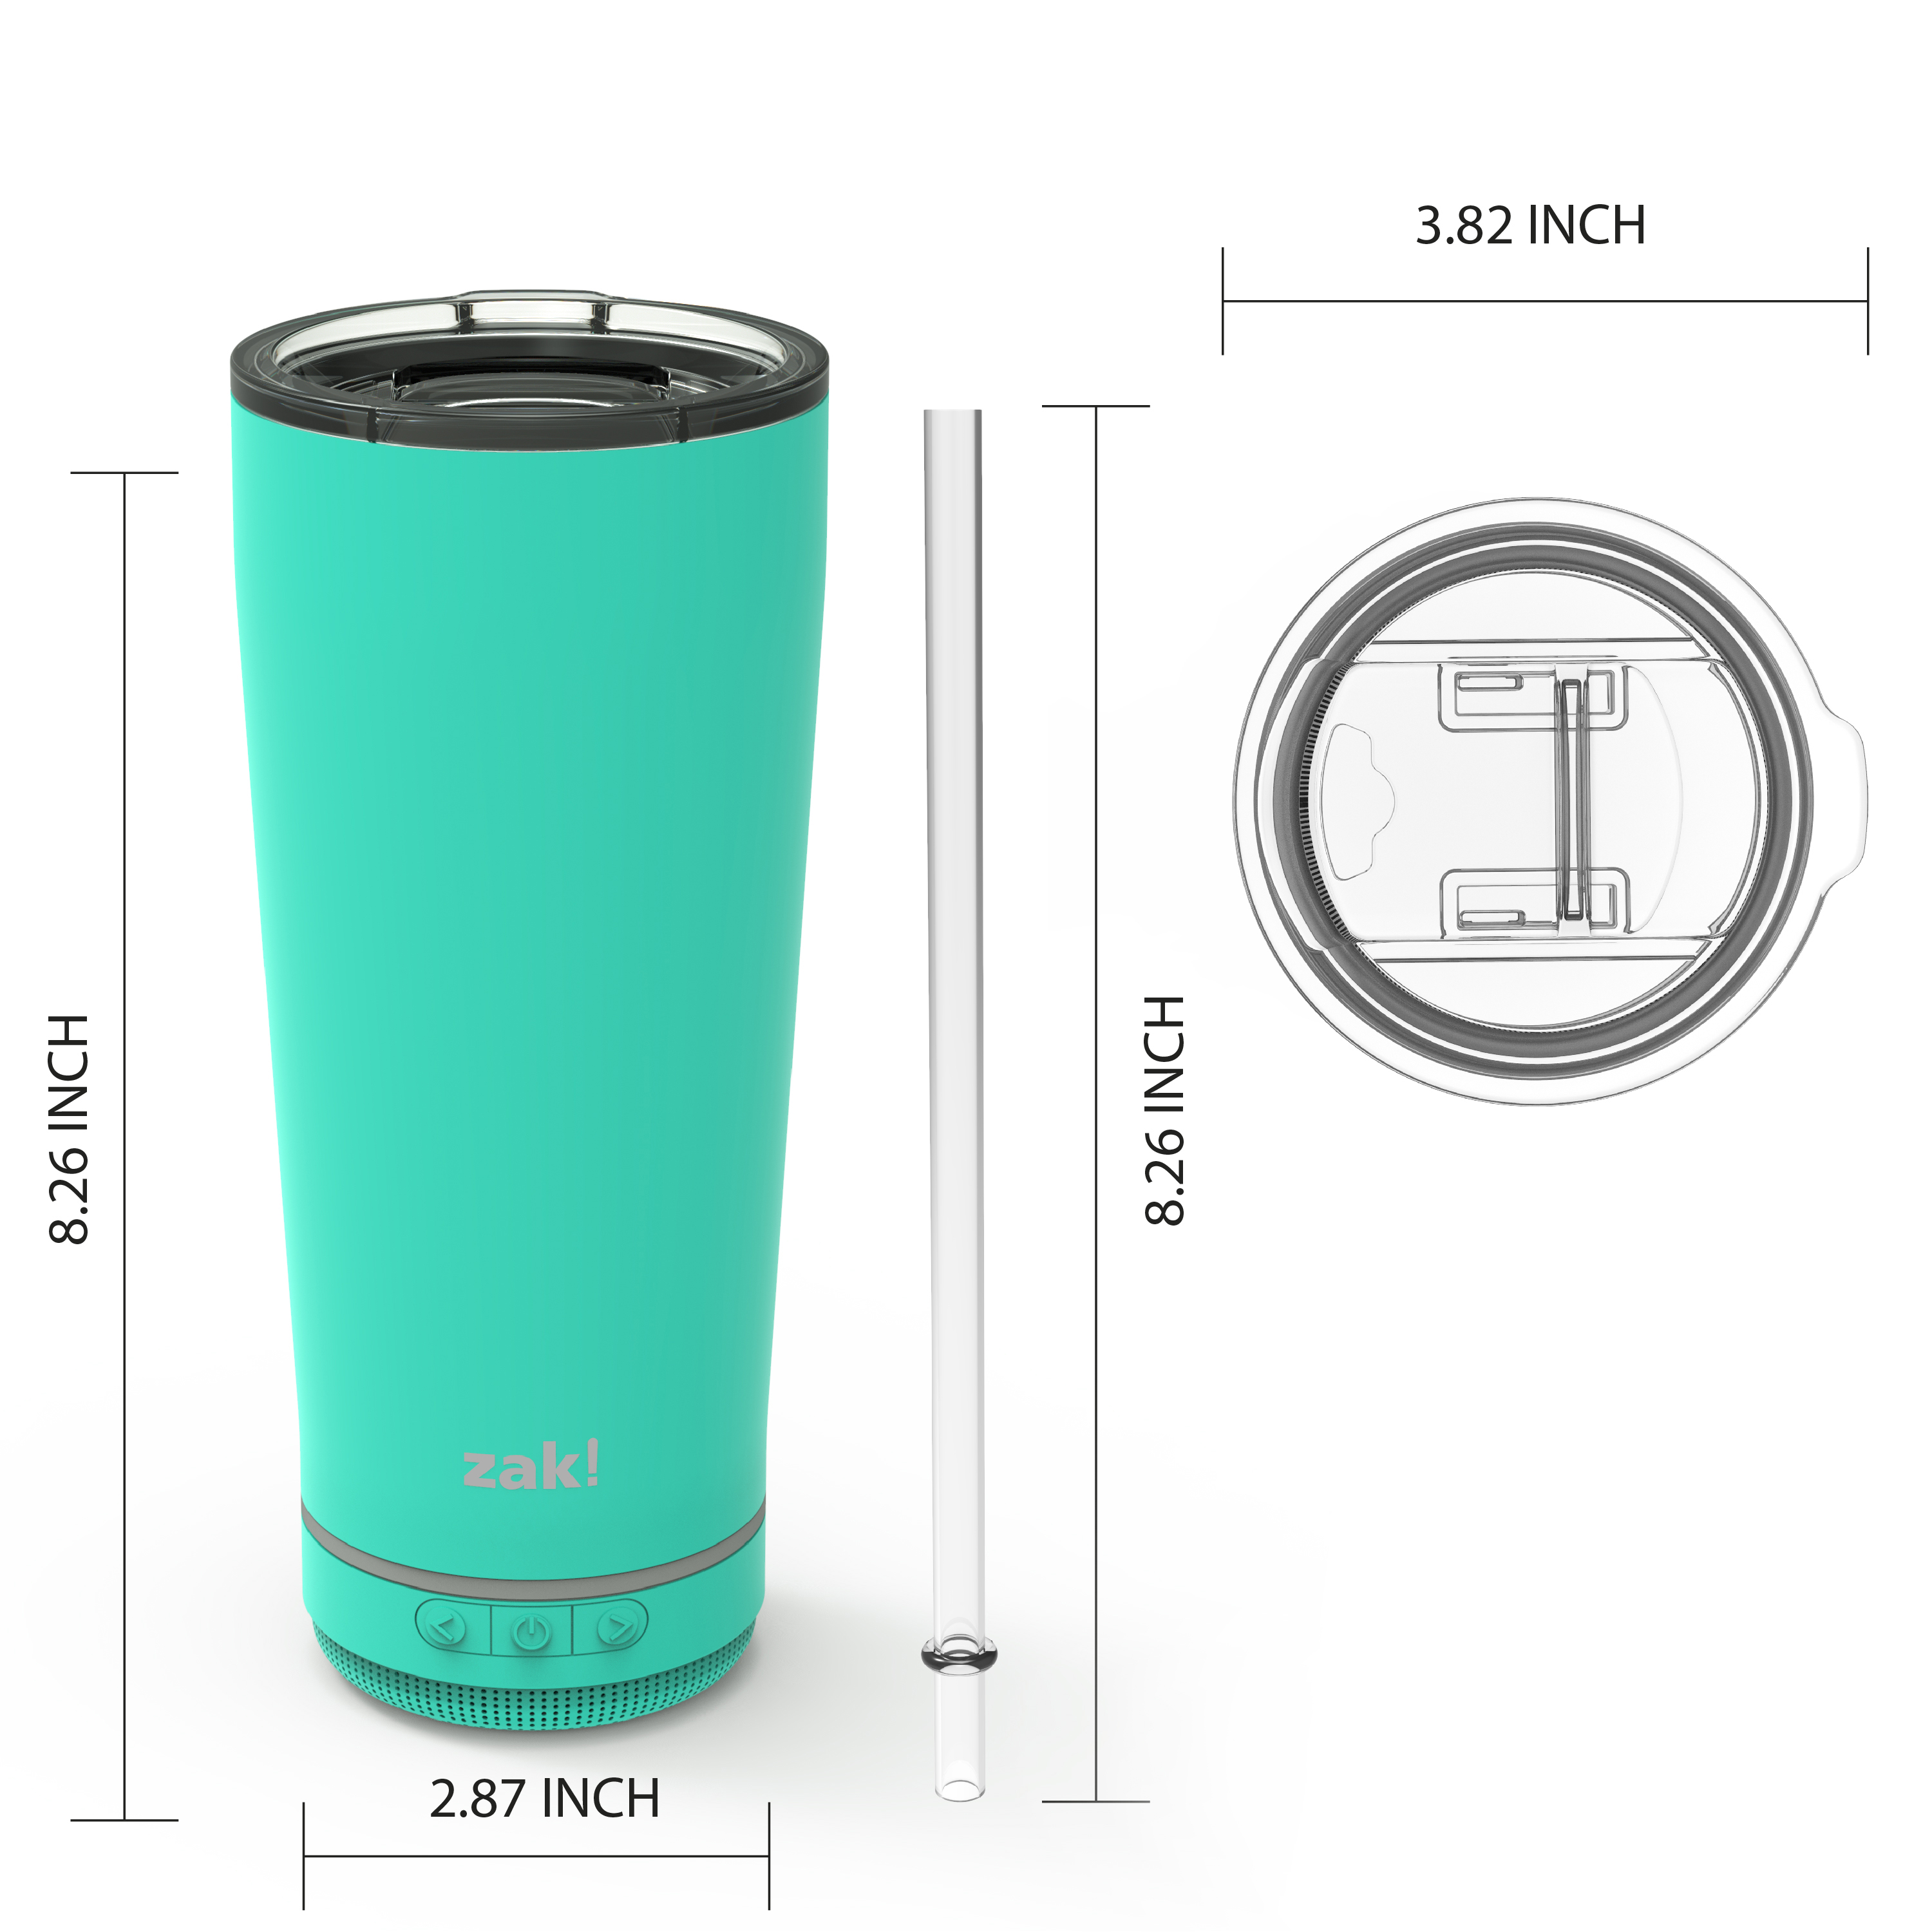 Zak Play 18 ounce Stainless Steel Tumbler with Bluetooth Speaker, Teal slideshow image 8